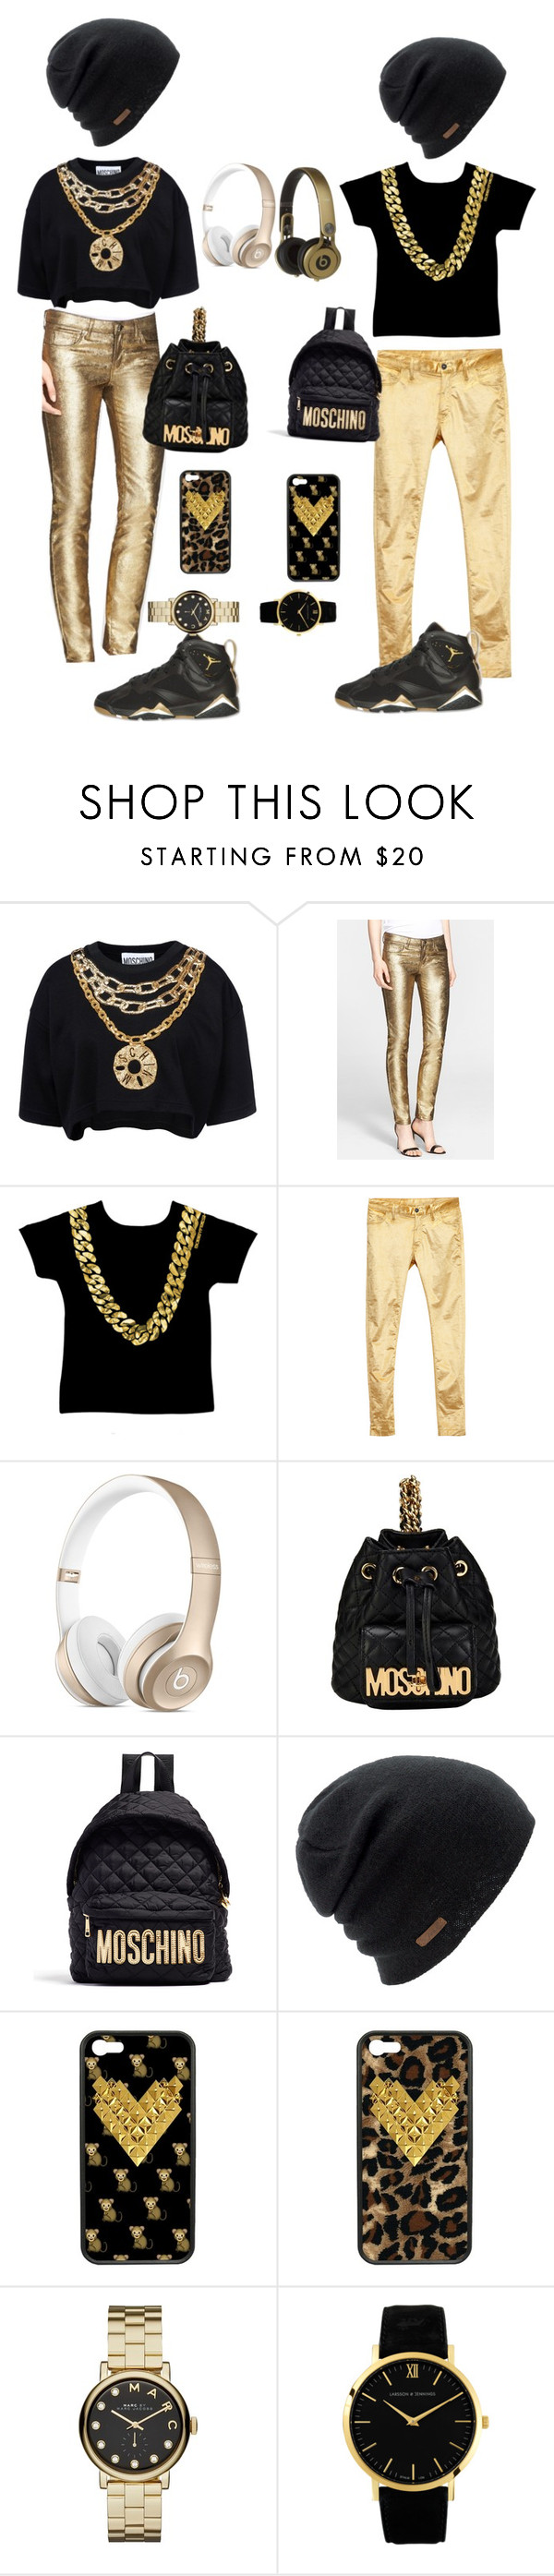 """""""bf+gf"""" by sanniahw ❤ liked on Polyvore featuring beauty, Moschino, Versace, Retrò, Ann Demeulemeester, Coal, Wildflower, Marc by Marc Jacobs and Larsson & Jennings"""